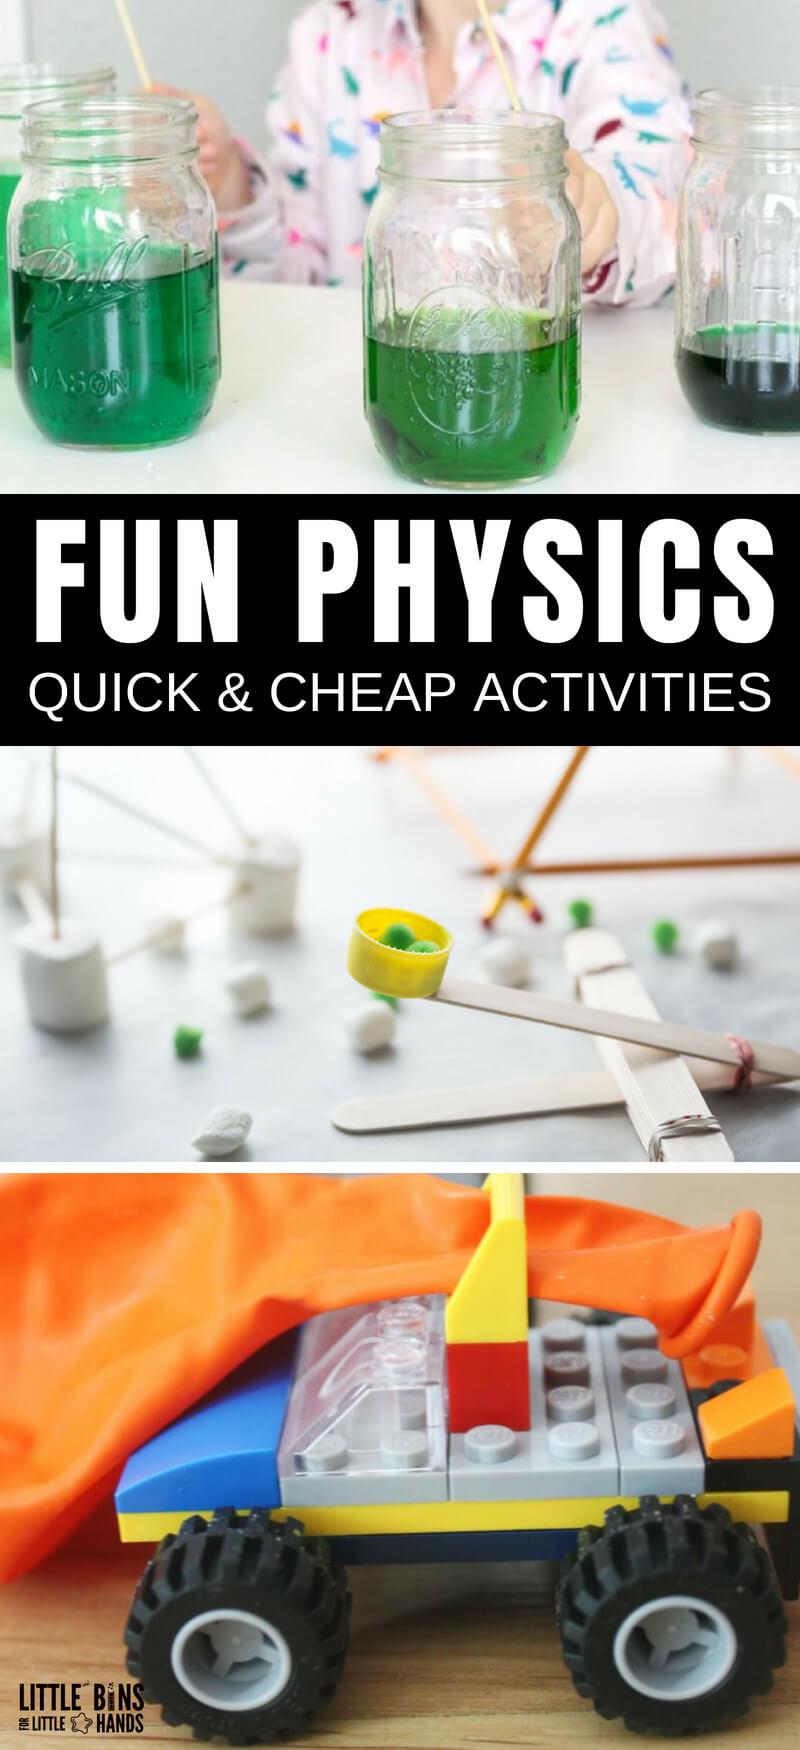 SIMPLE PHYSICS ACTIVITIES FOR KIDS